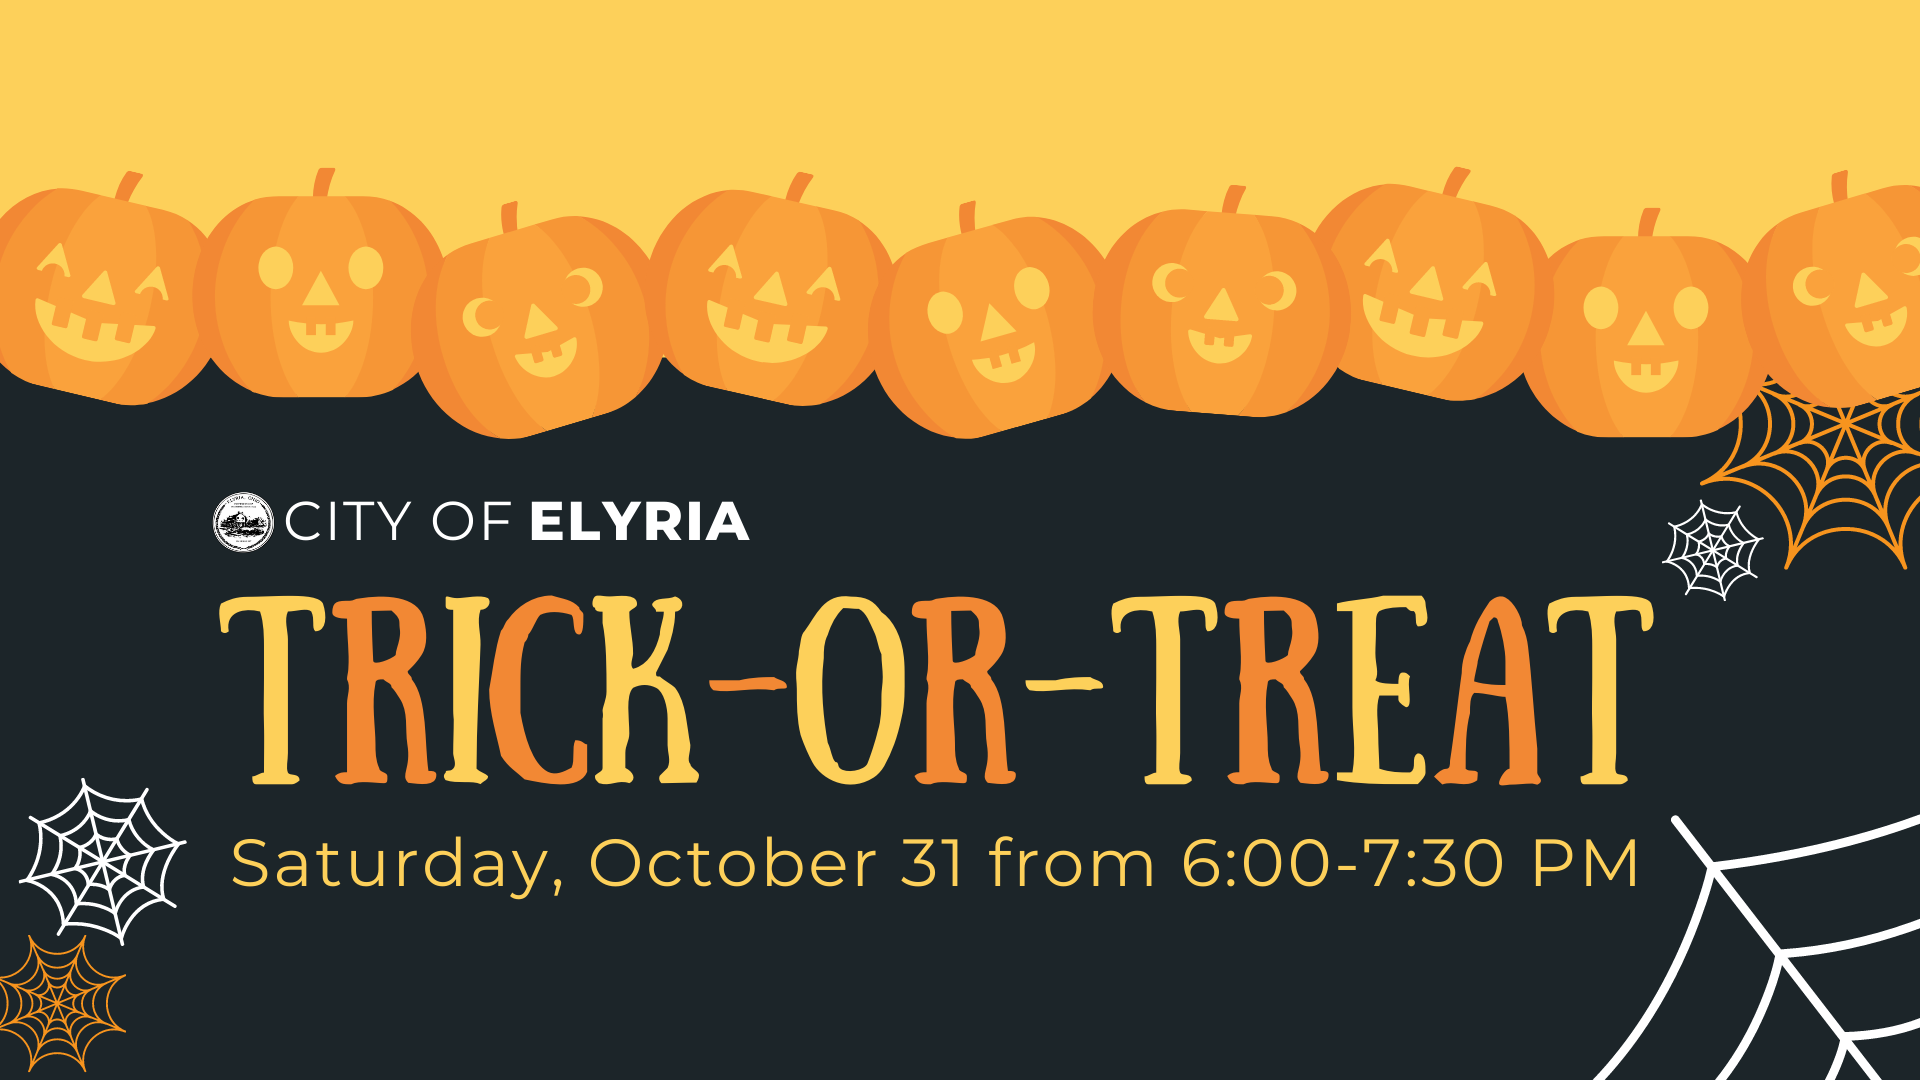 Trick-or-Treat in the City of Elyria is from 6-7:30 PM on Saturday, October 31st